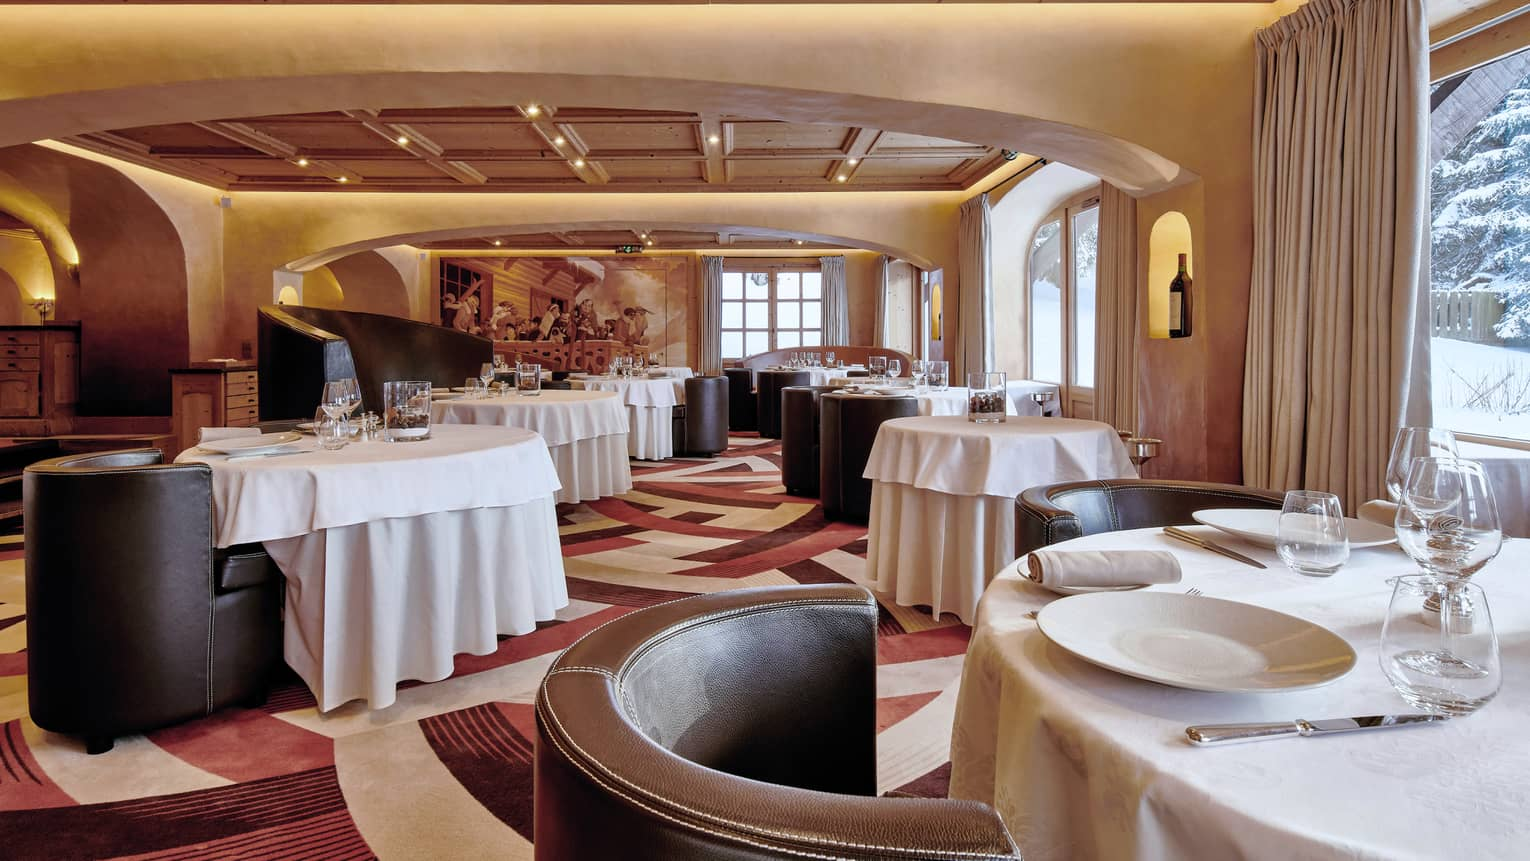 Prima Restaurant, curved leather lounge chairs, dining tables with white linens